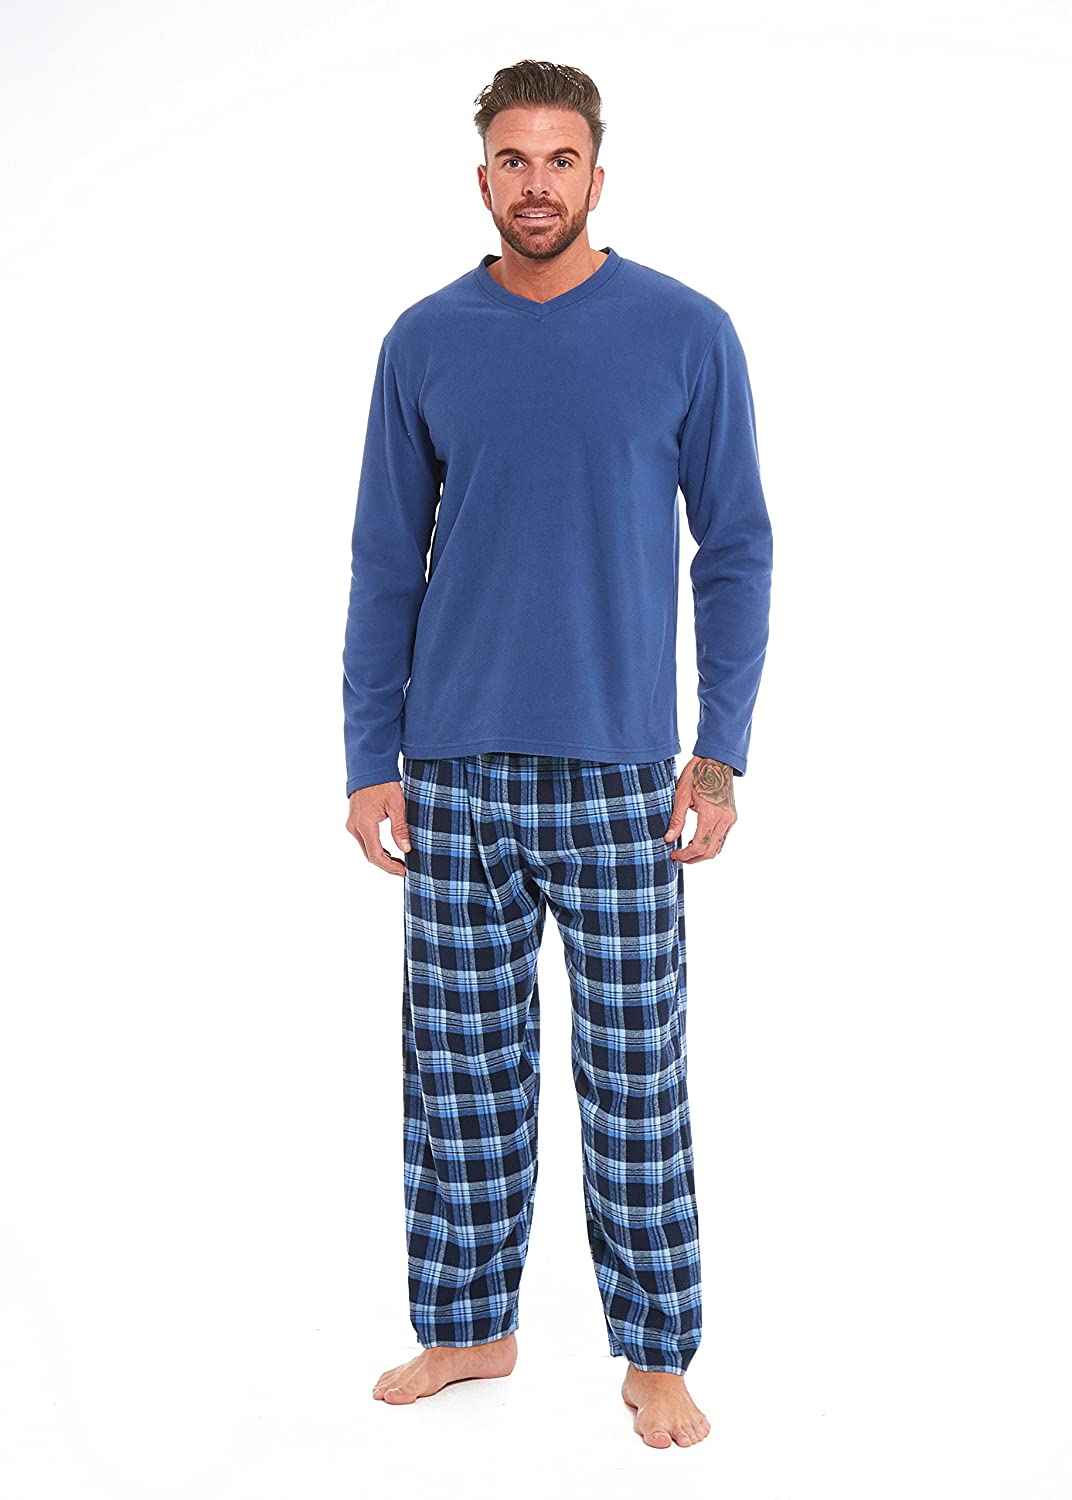 Mens Boys Pyjamas PJ's Cozy Warm Fleece Pajama Set - Matching Pajamas Sets